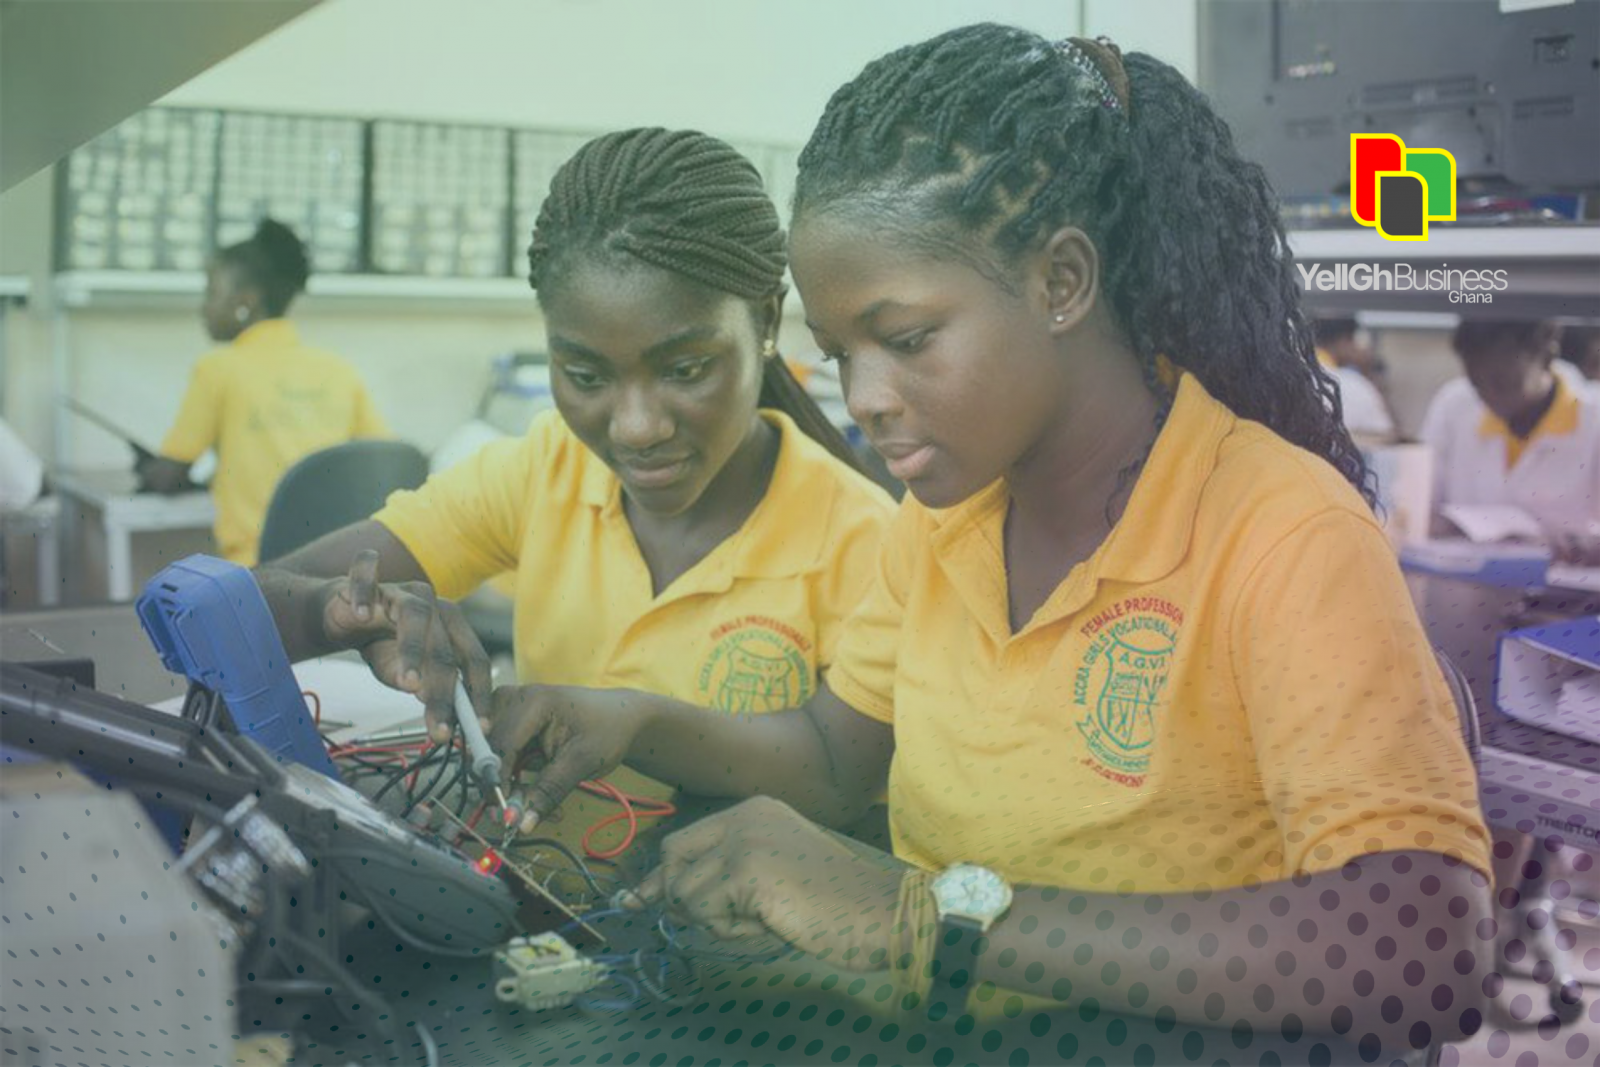 Technical Vocational School in Ghana 2019 - Yellow Pages Ghana